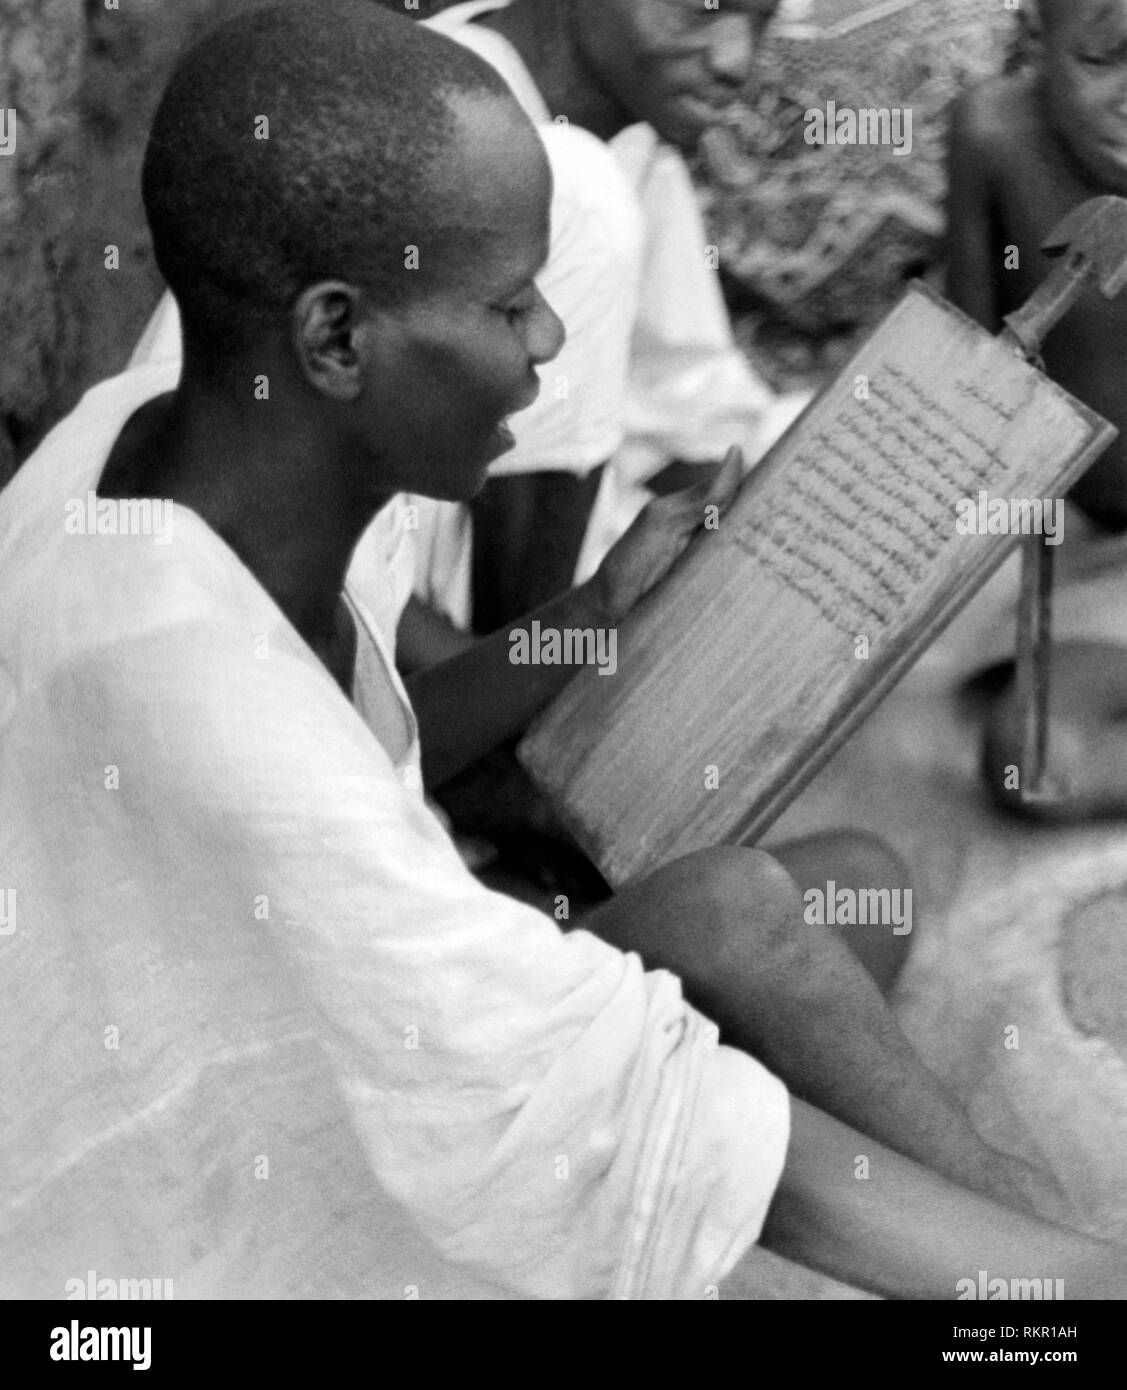 africa, ghana, young dagomba while reading the Koran, 1930 - Stock Image